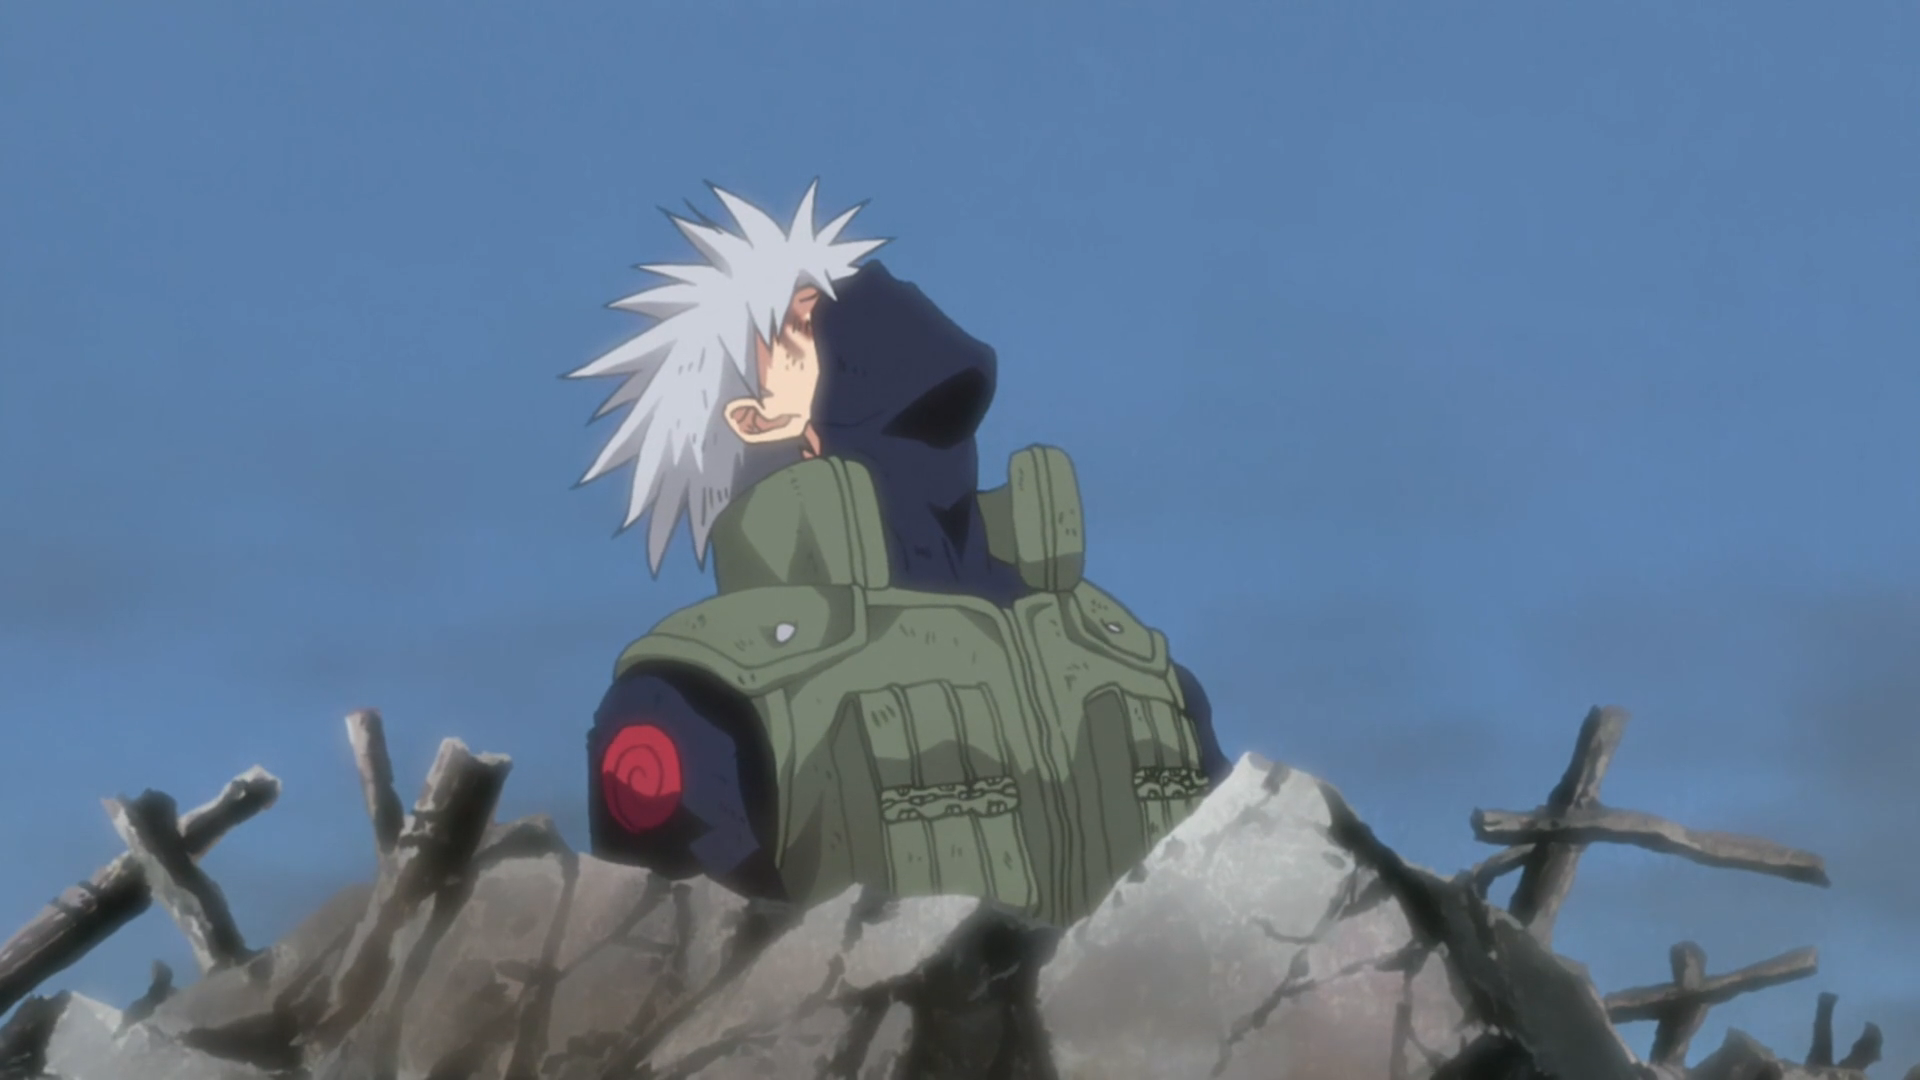 -http://img3.wikia.nocookie.net/__cb20100507021136/naruto/images/6/61/Kakashi_Defeated_by_Pain.png